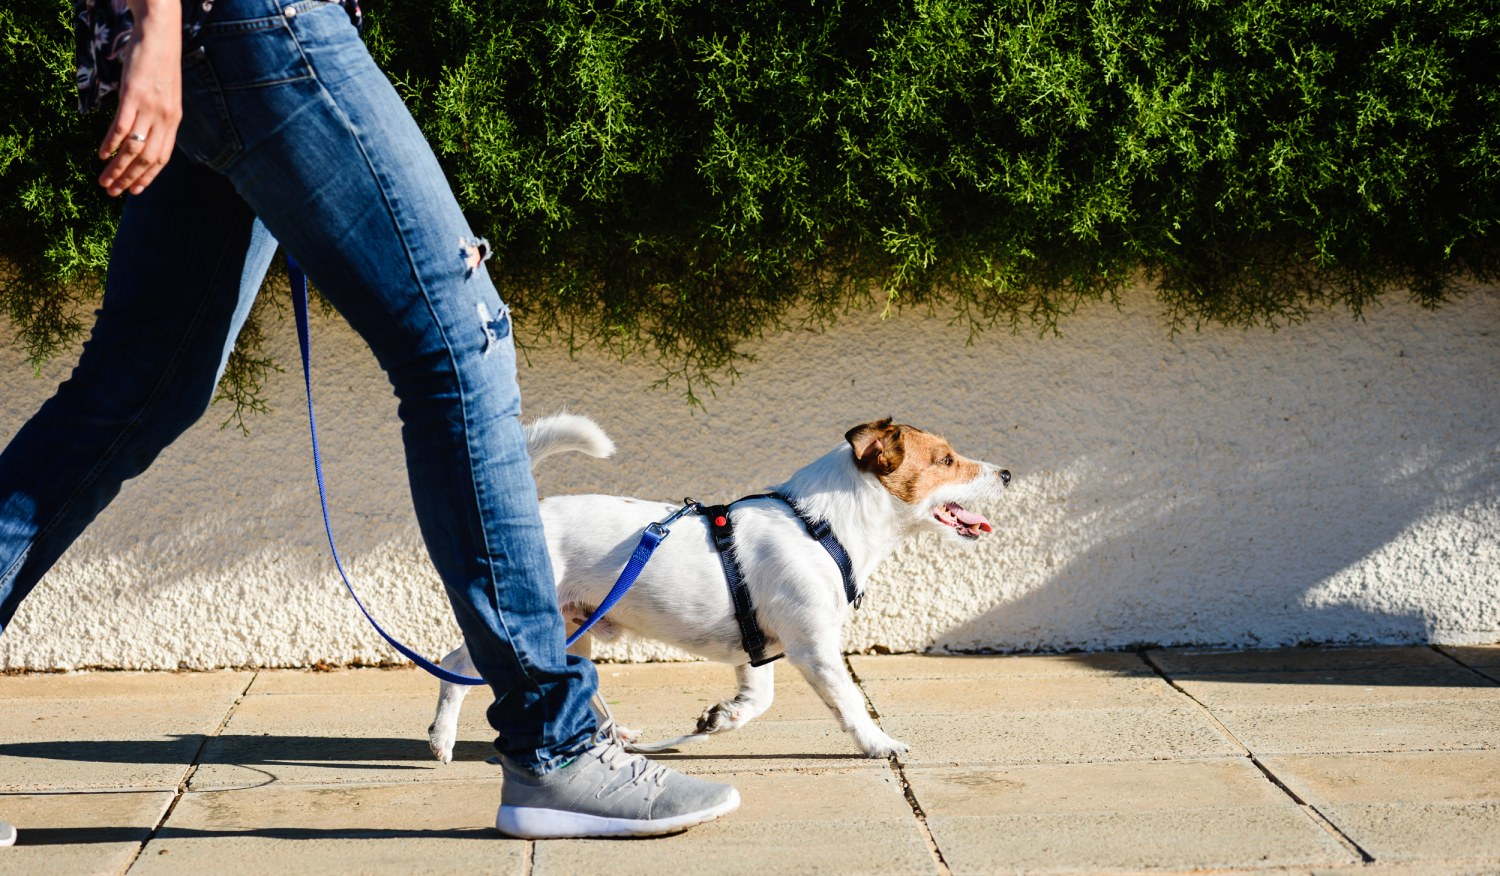 8 best dog harnesses in 2021: Find the best harness for your dog